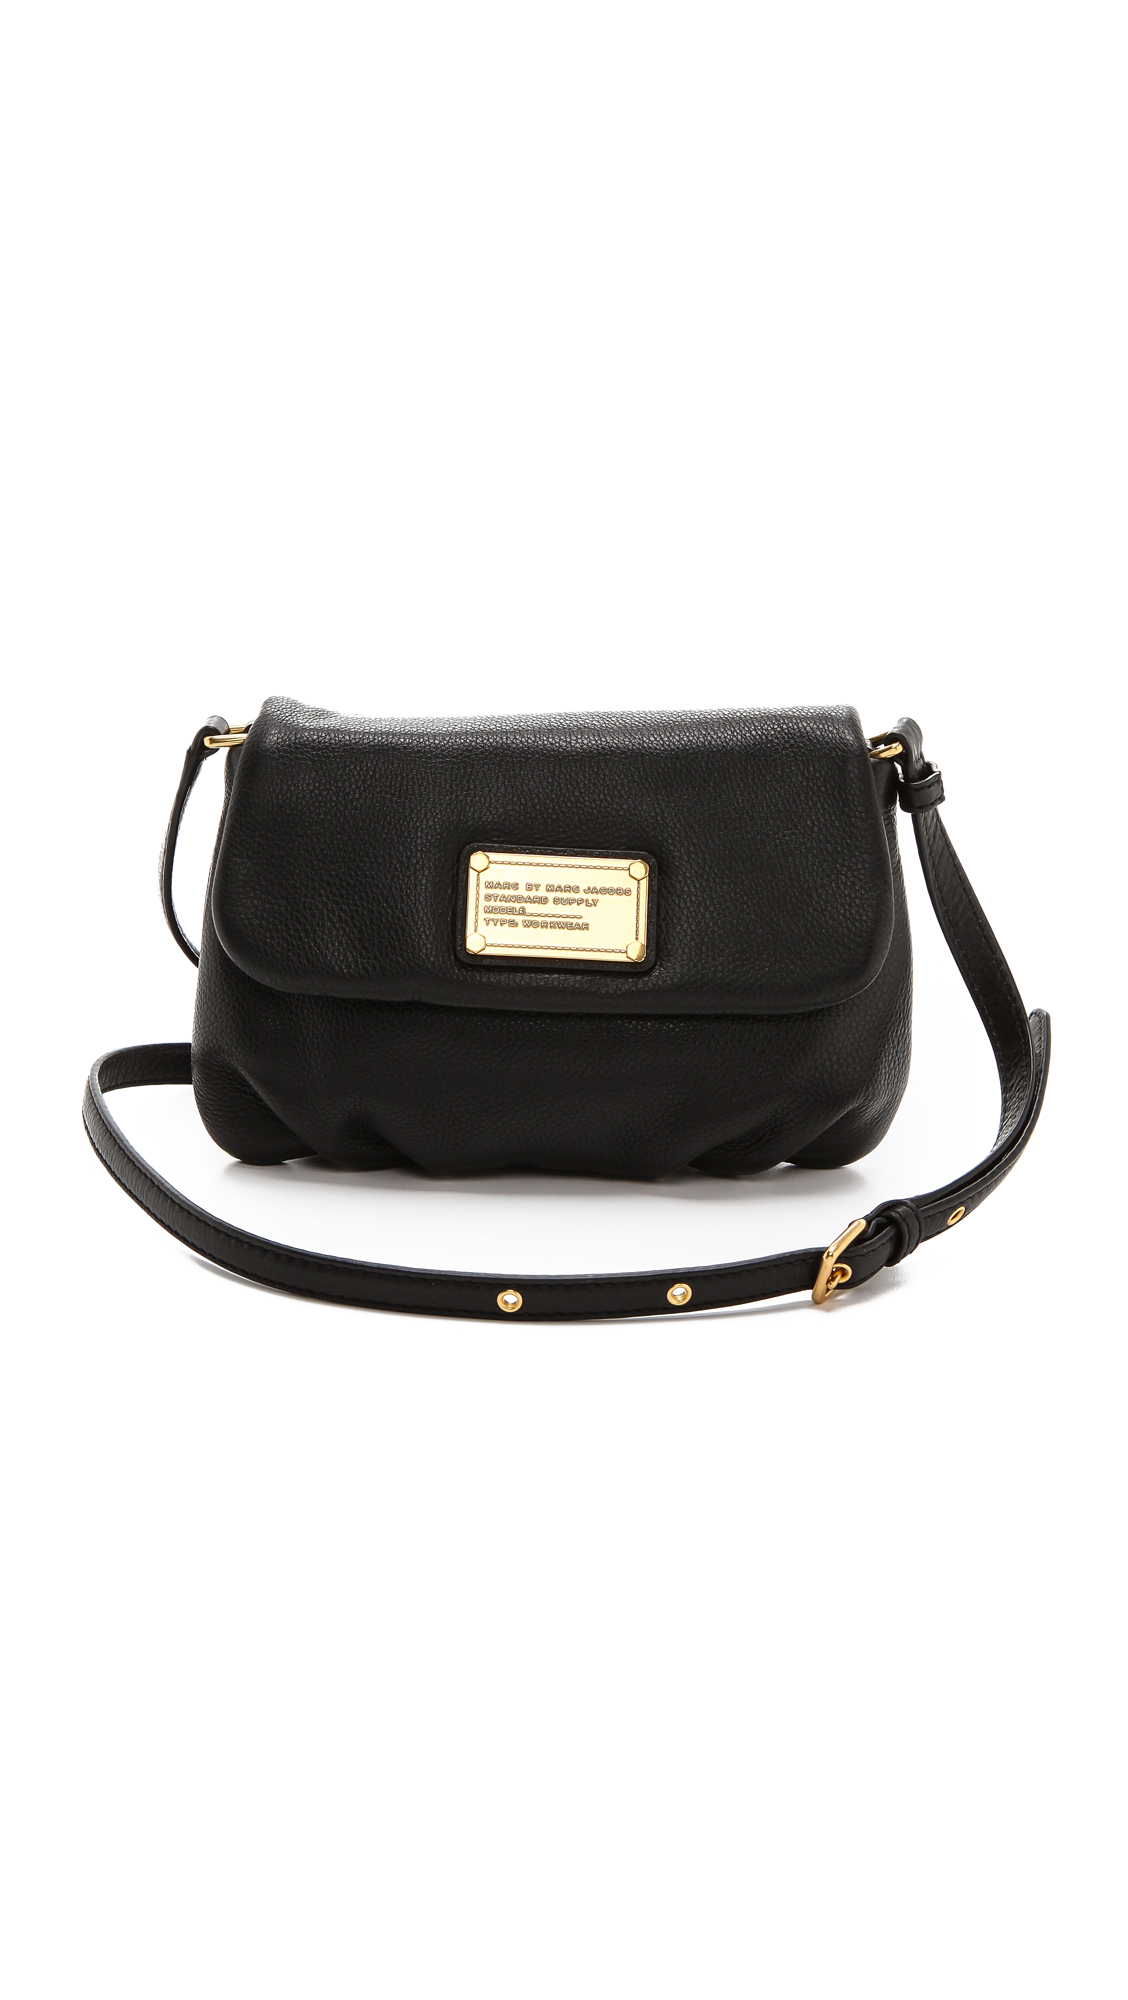 e87653637d85 Lyst - Marc By Marc Jacobs Classic Q Percy Leather Cross-Body Bag in ...